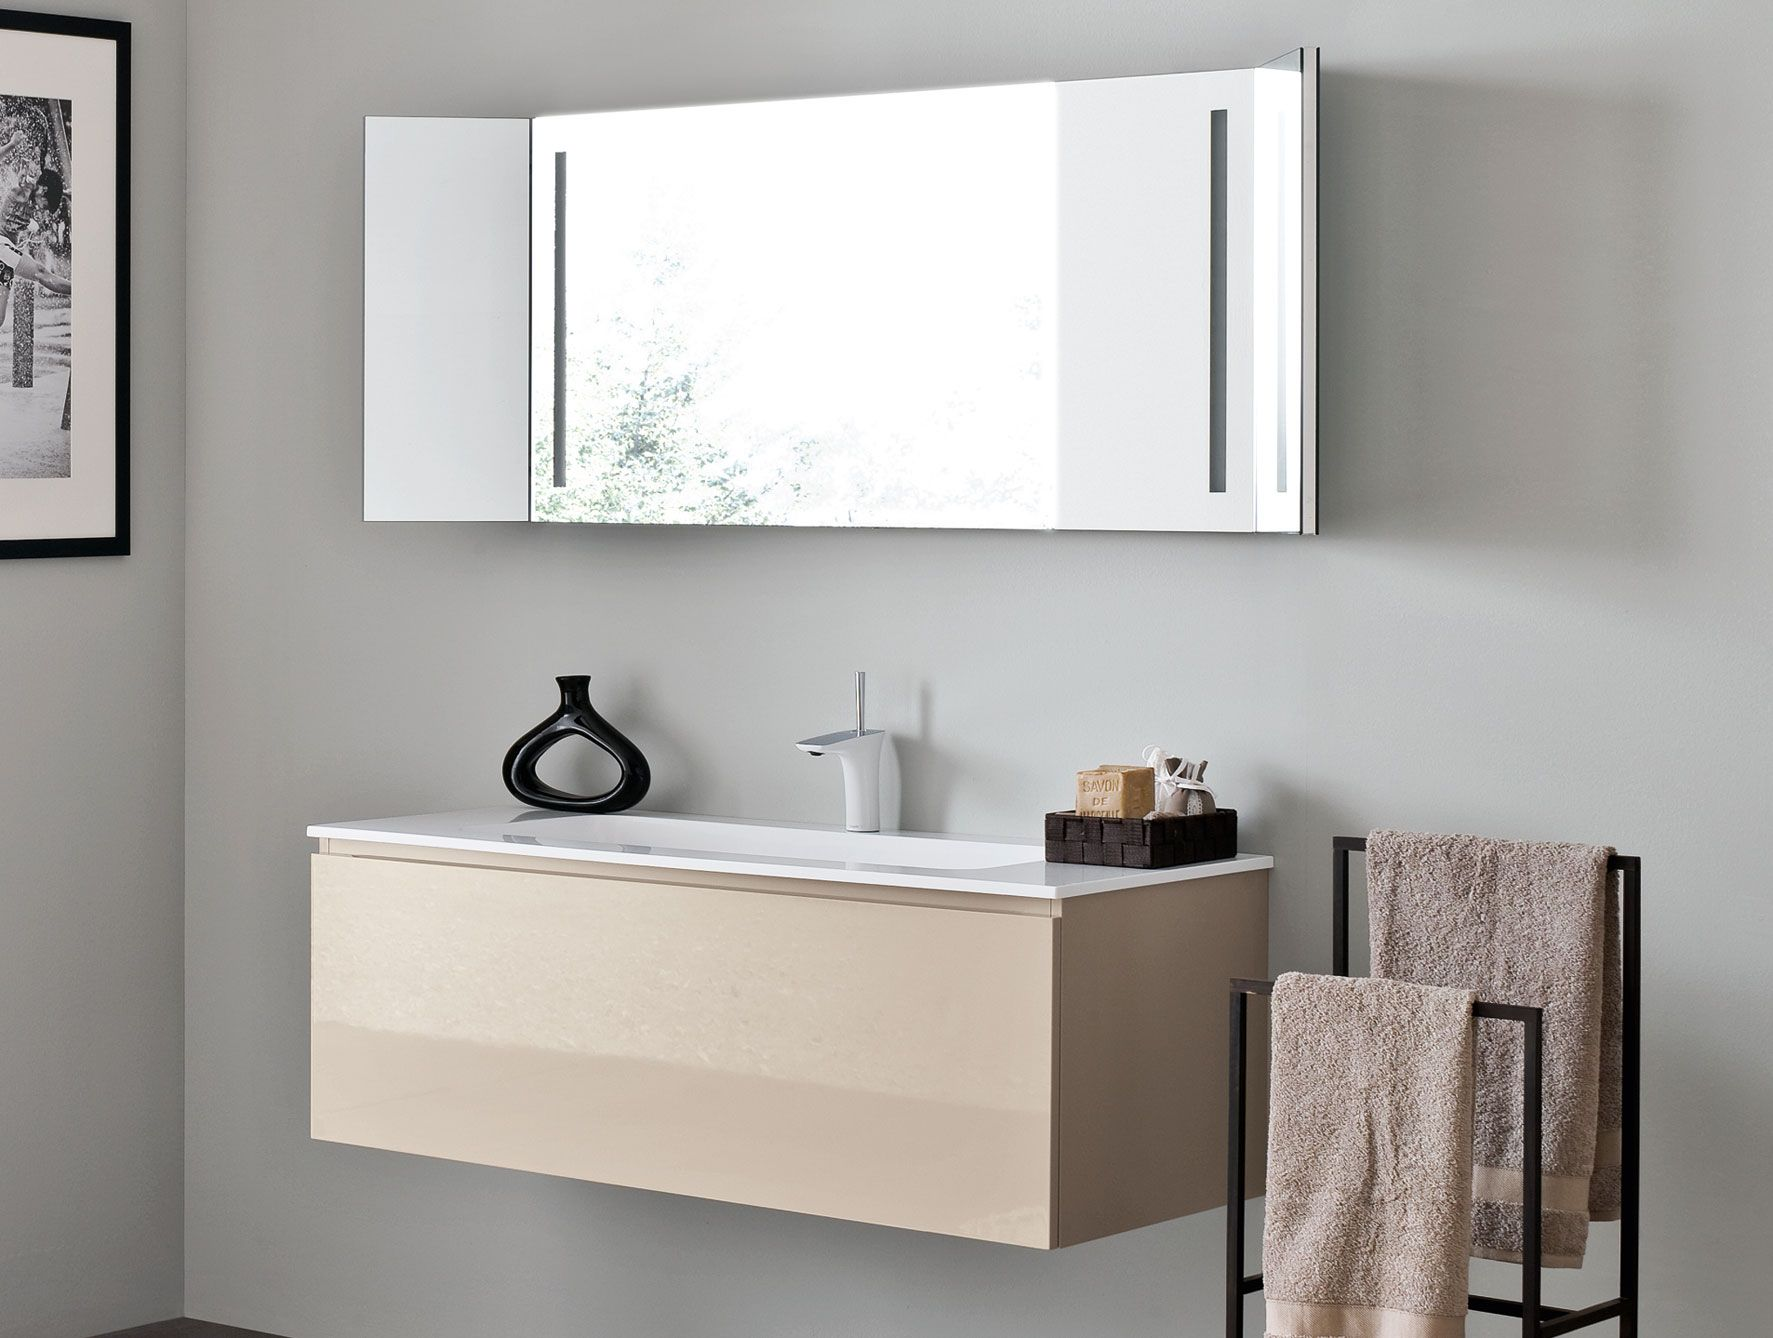 Ordinaire Small Wall Mounted Bathroom Sinks